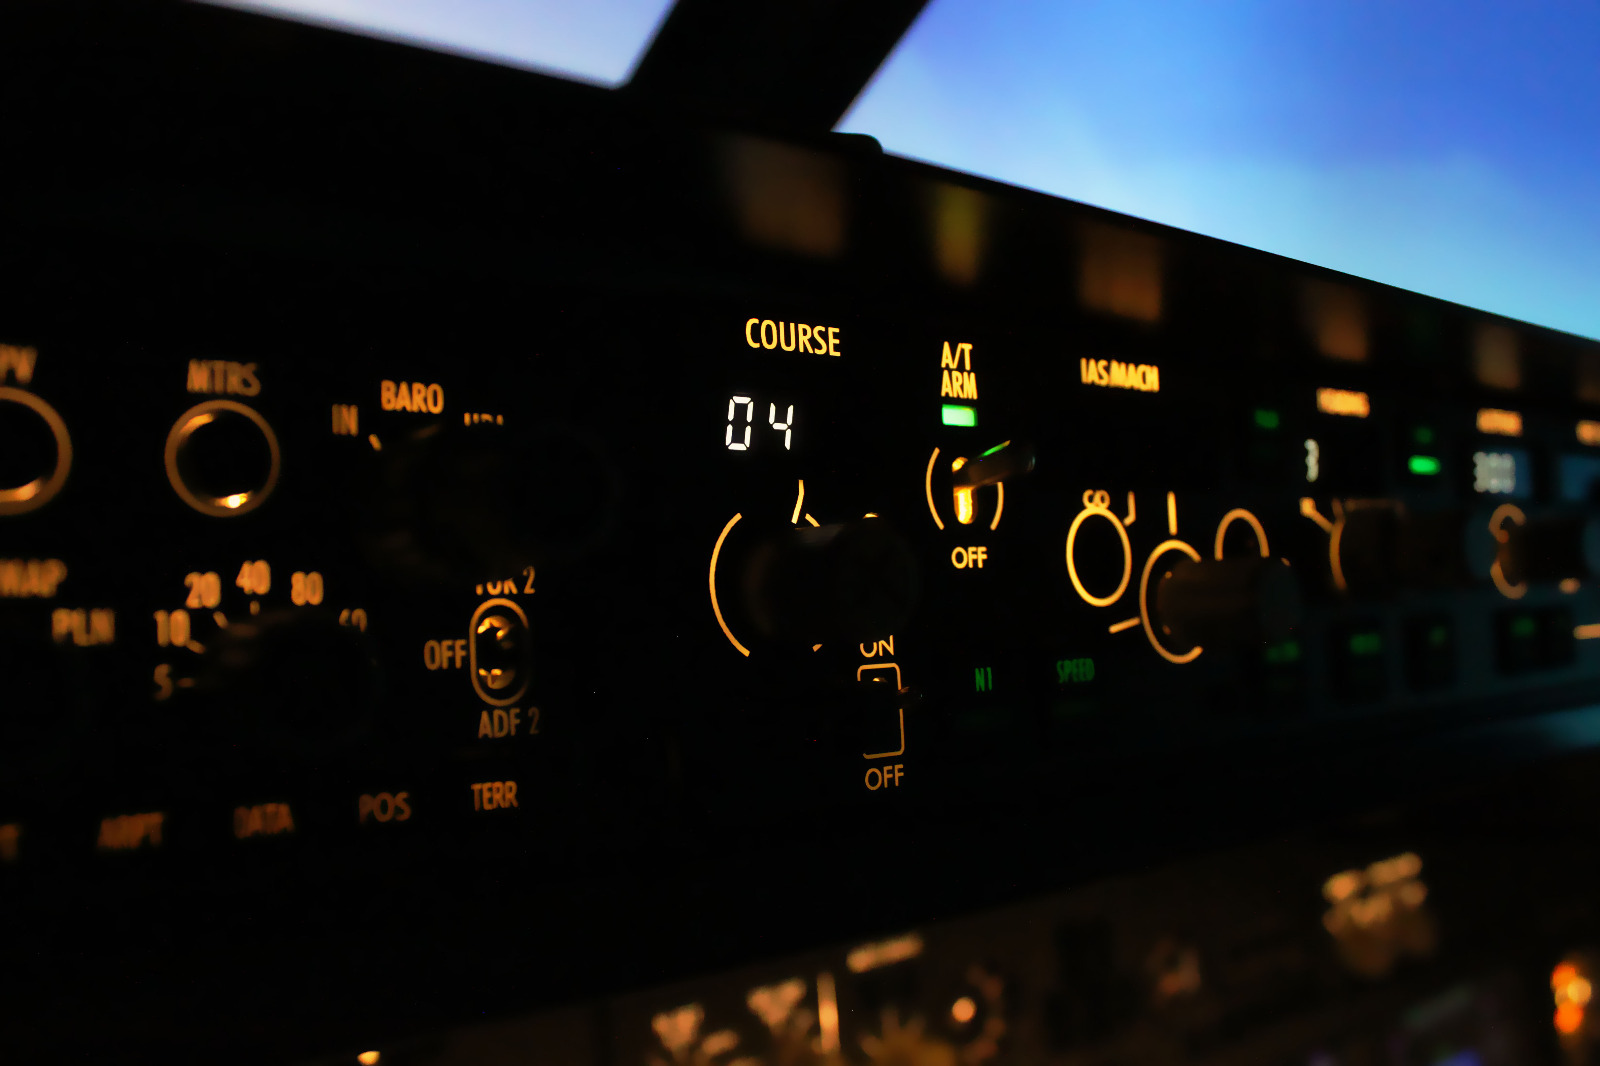 FLY.SIMFLIGHT - BOEING 737-800 SIMULATOR TICKETS - 1 DAY - ALL YOU CAN FLY - KALTENKIRCHEN, GERMANY